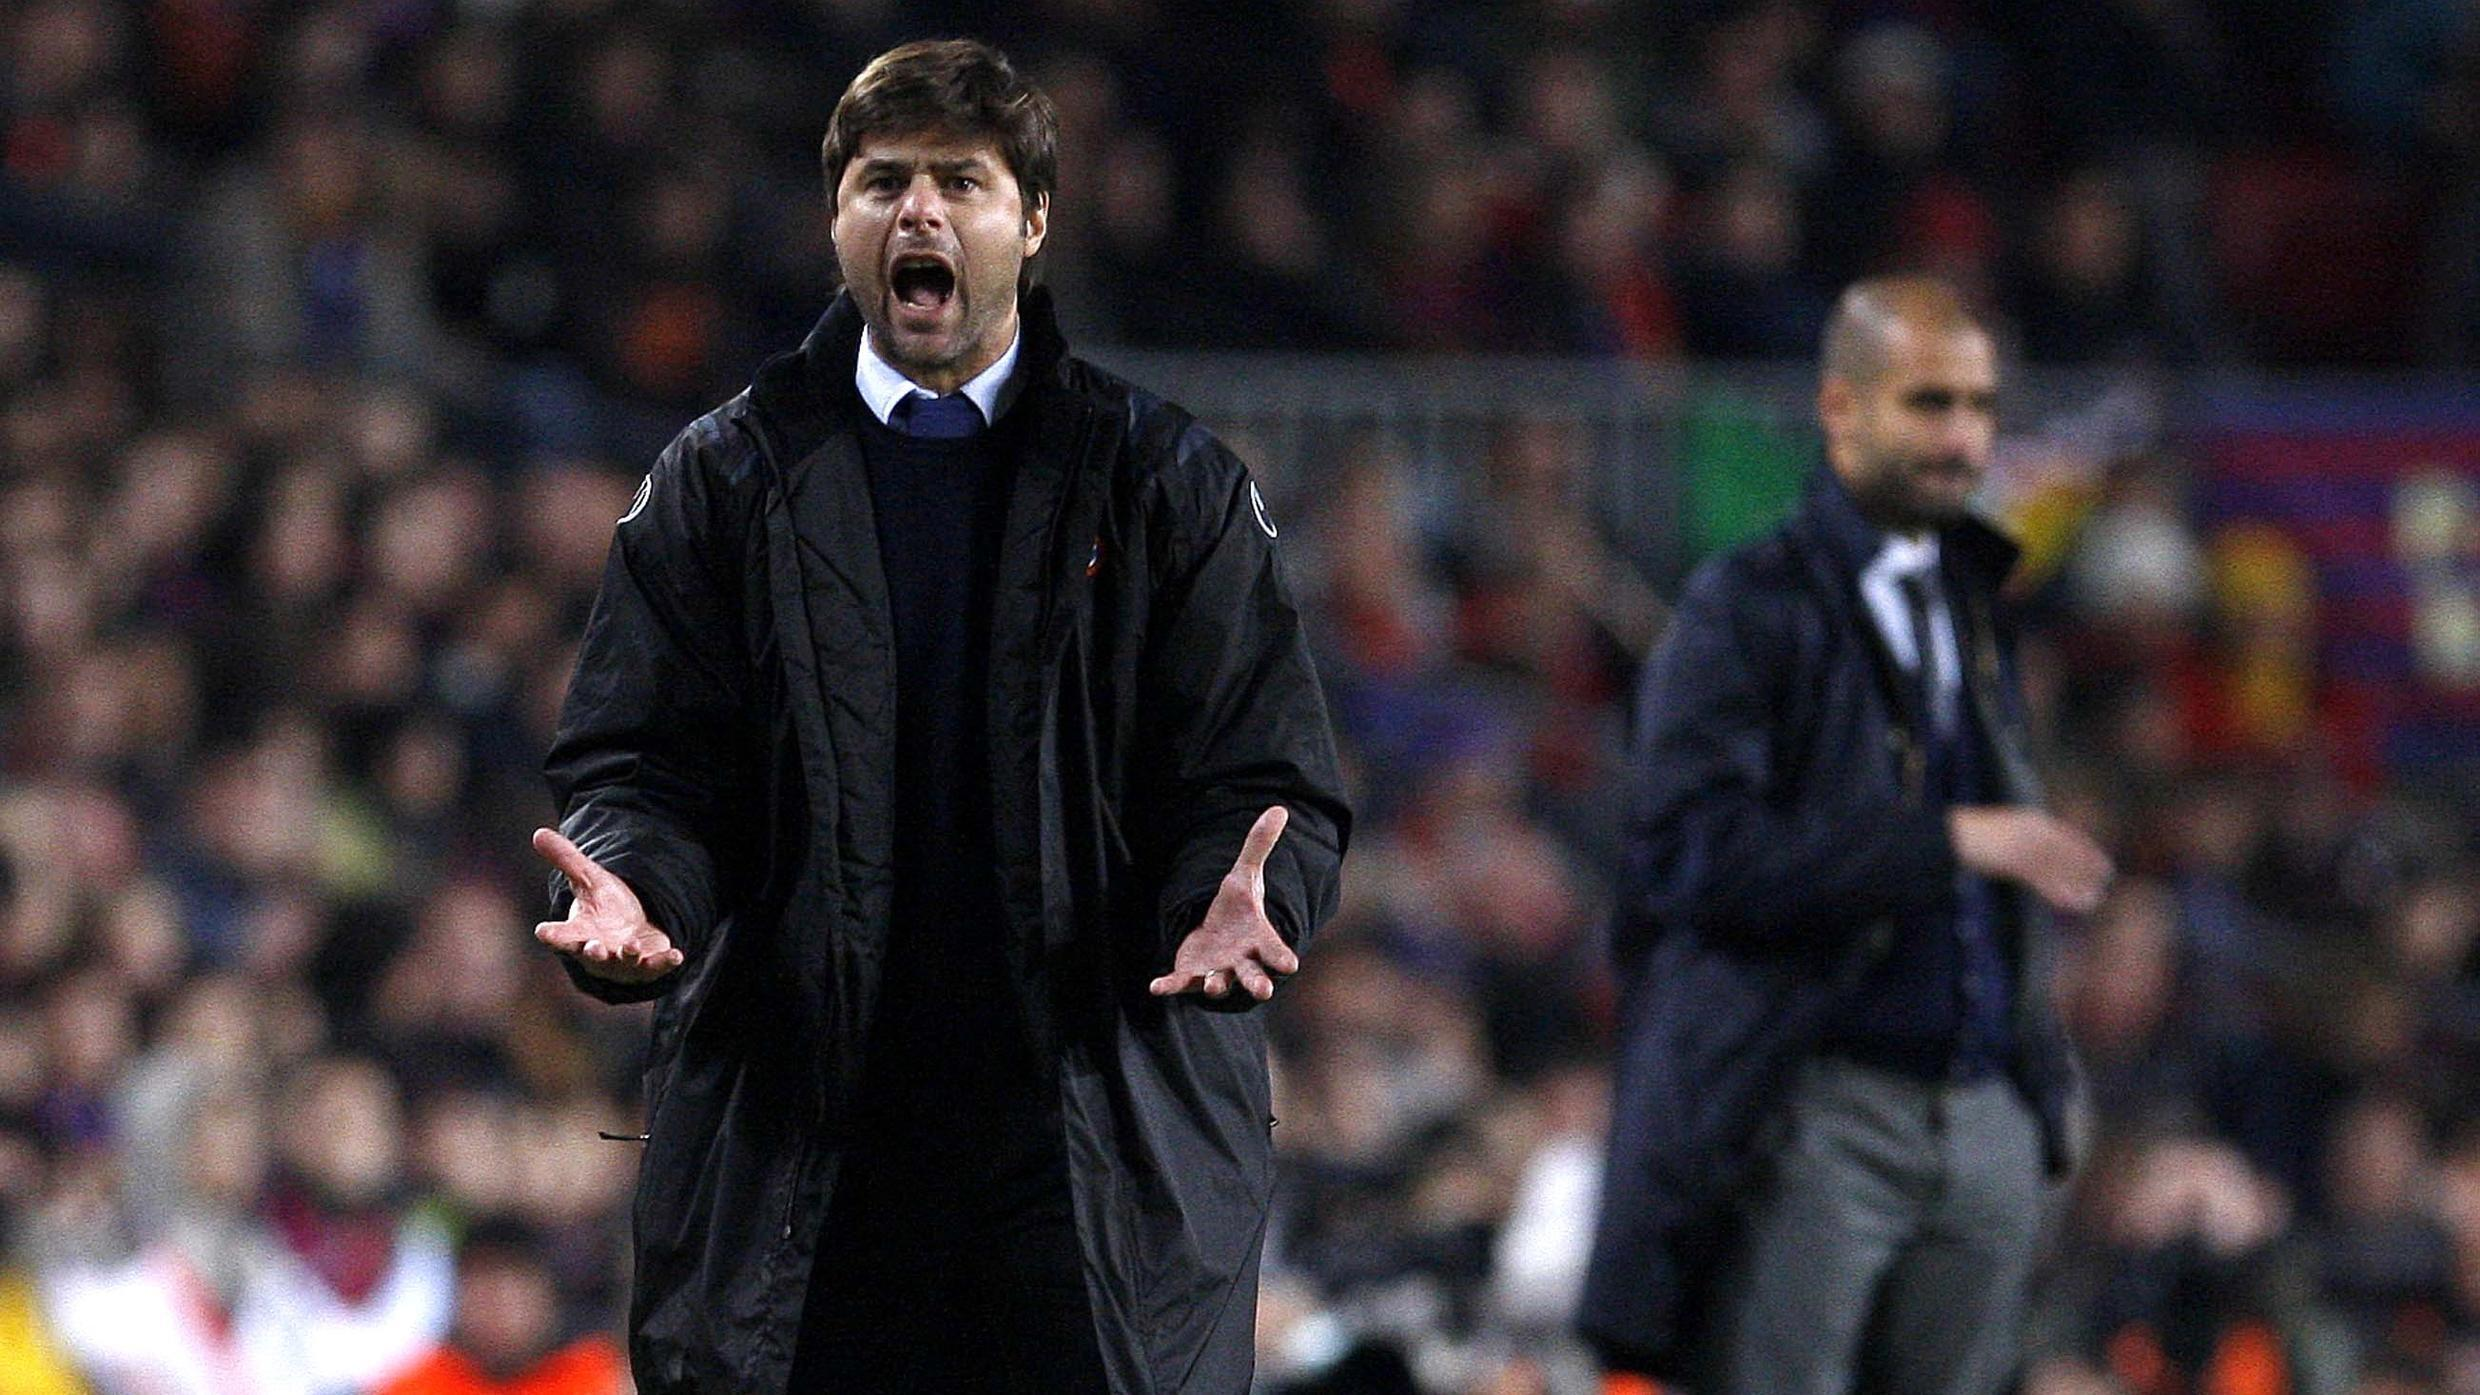 Pochettino facing Guardiola's Barcelona back in 2009.